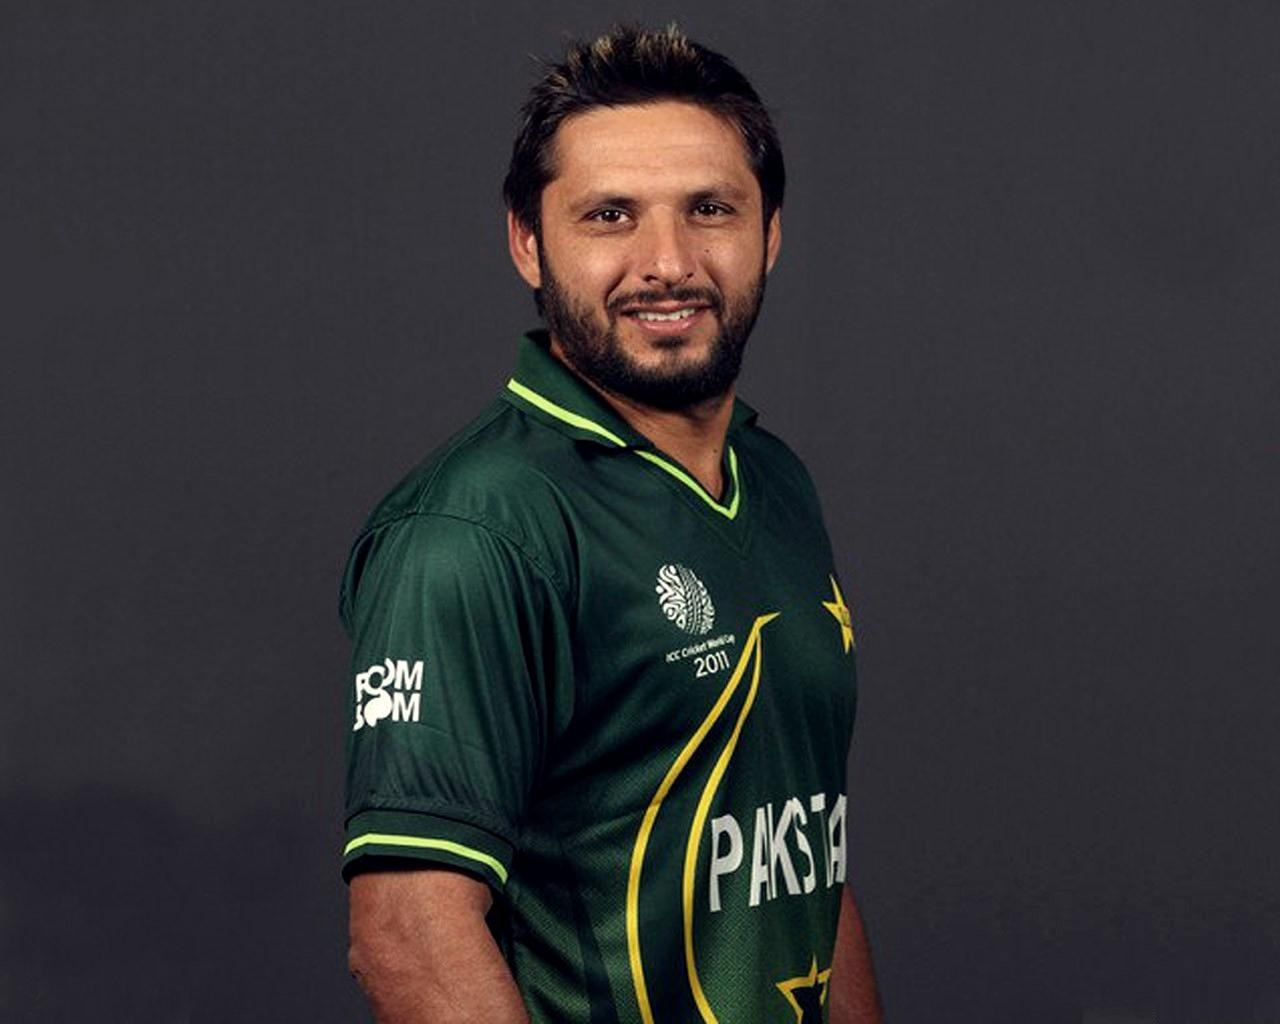 Kettering Online News: Shahid Afridi Signs For Steelbacks